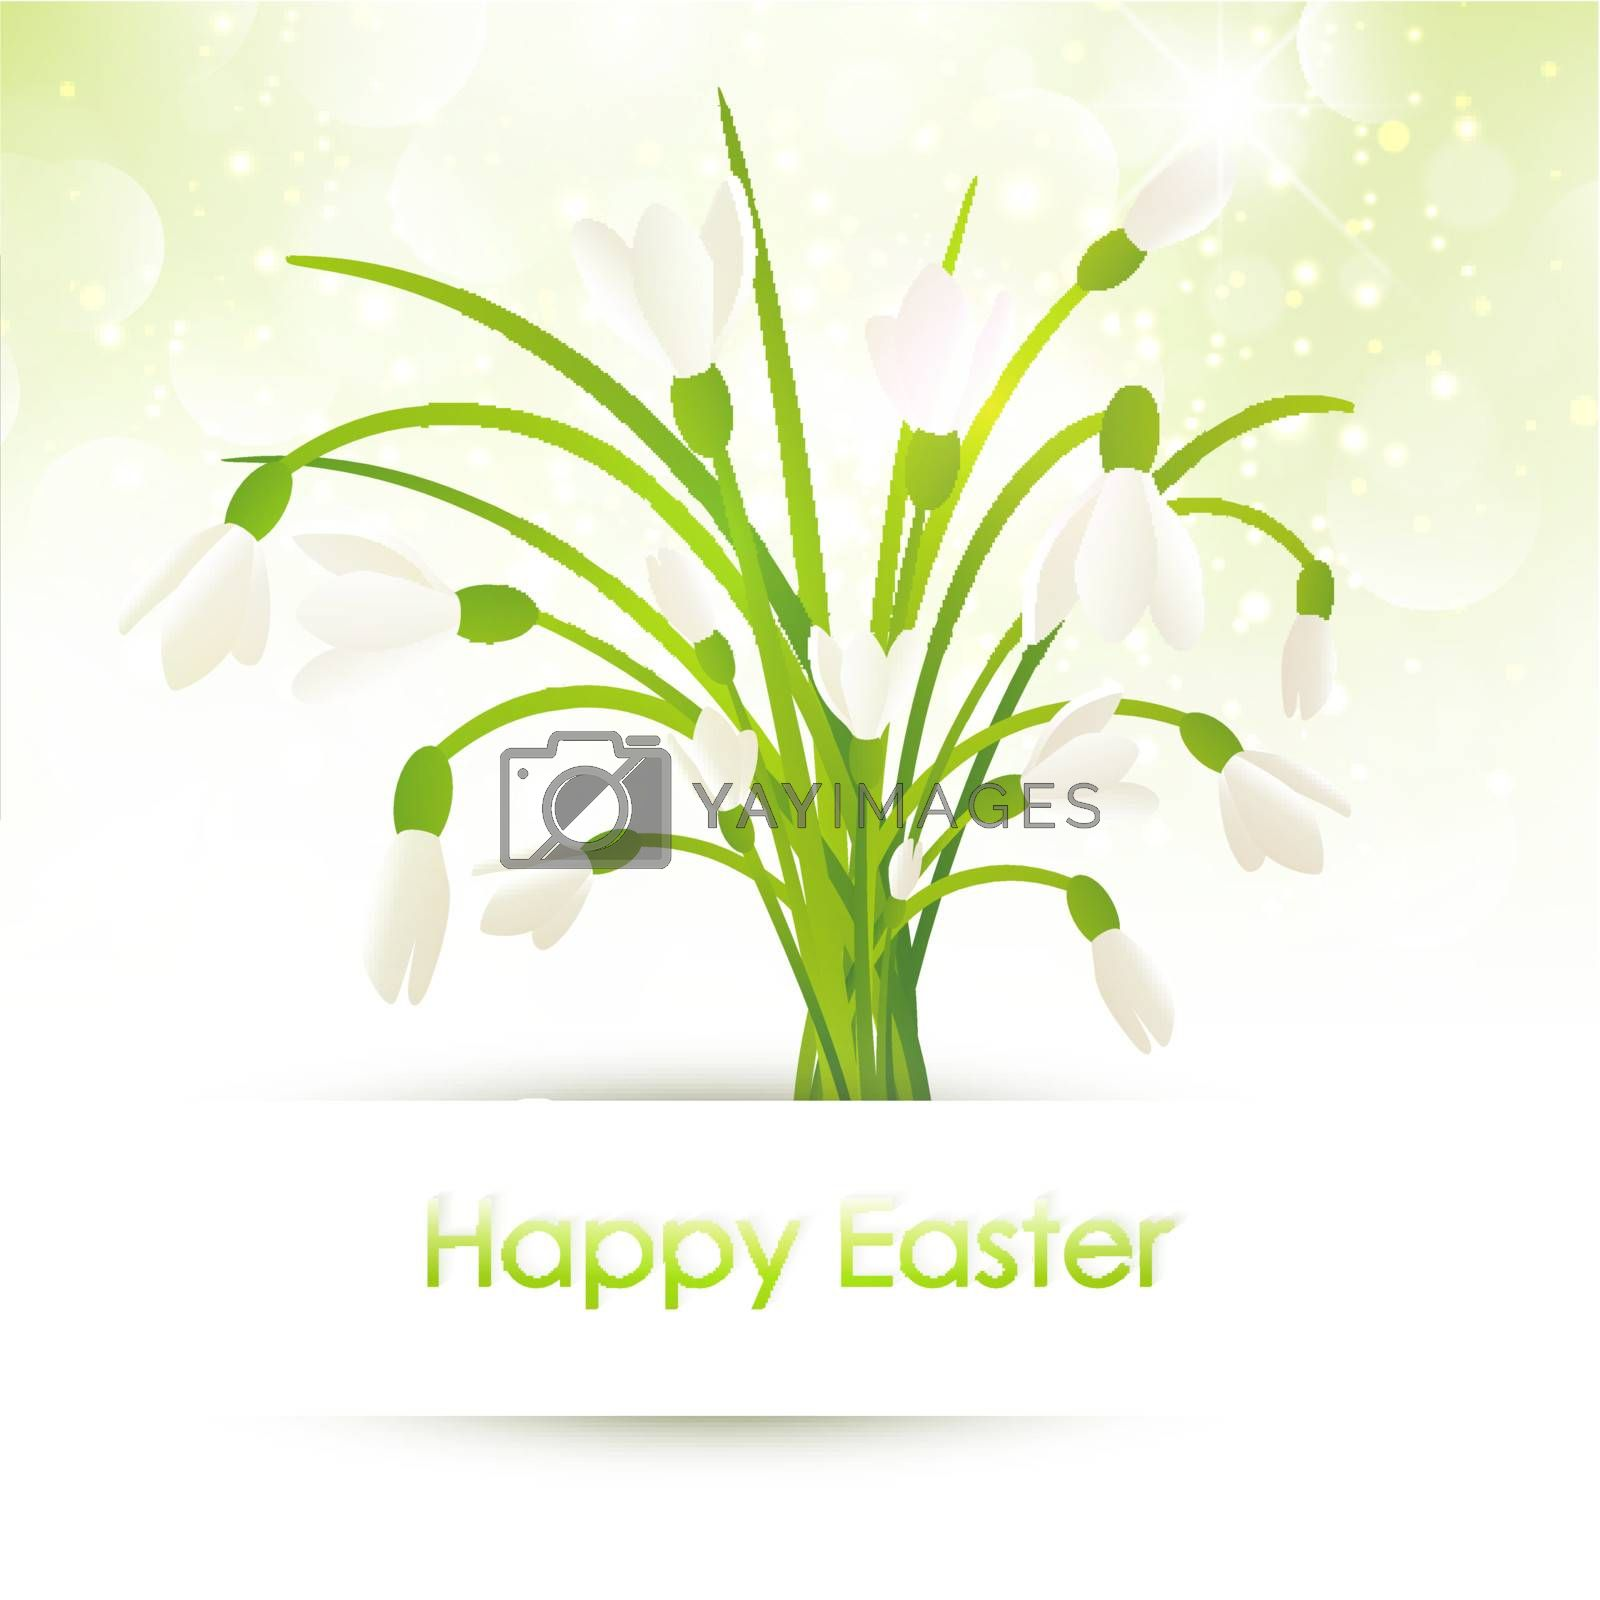 Happy Easter Greeting With Snowdrop Flowers Over Bright Background